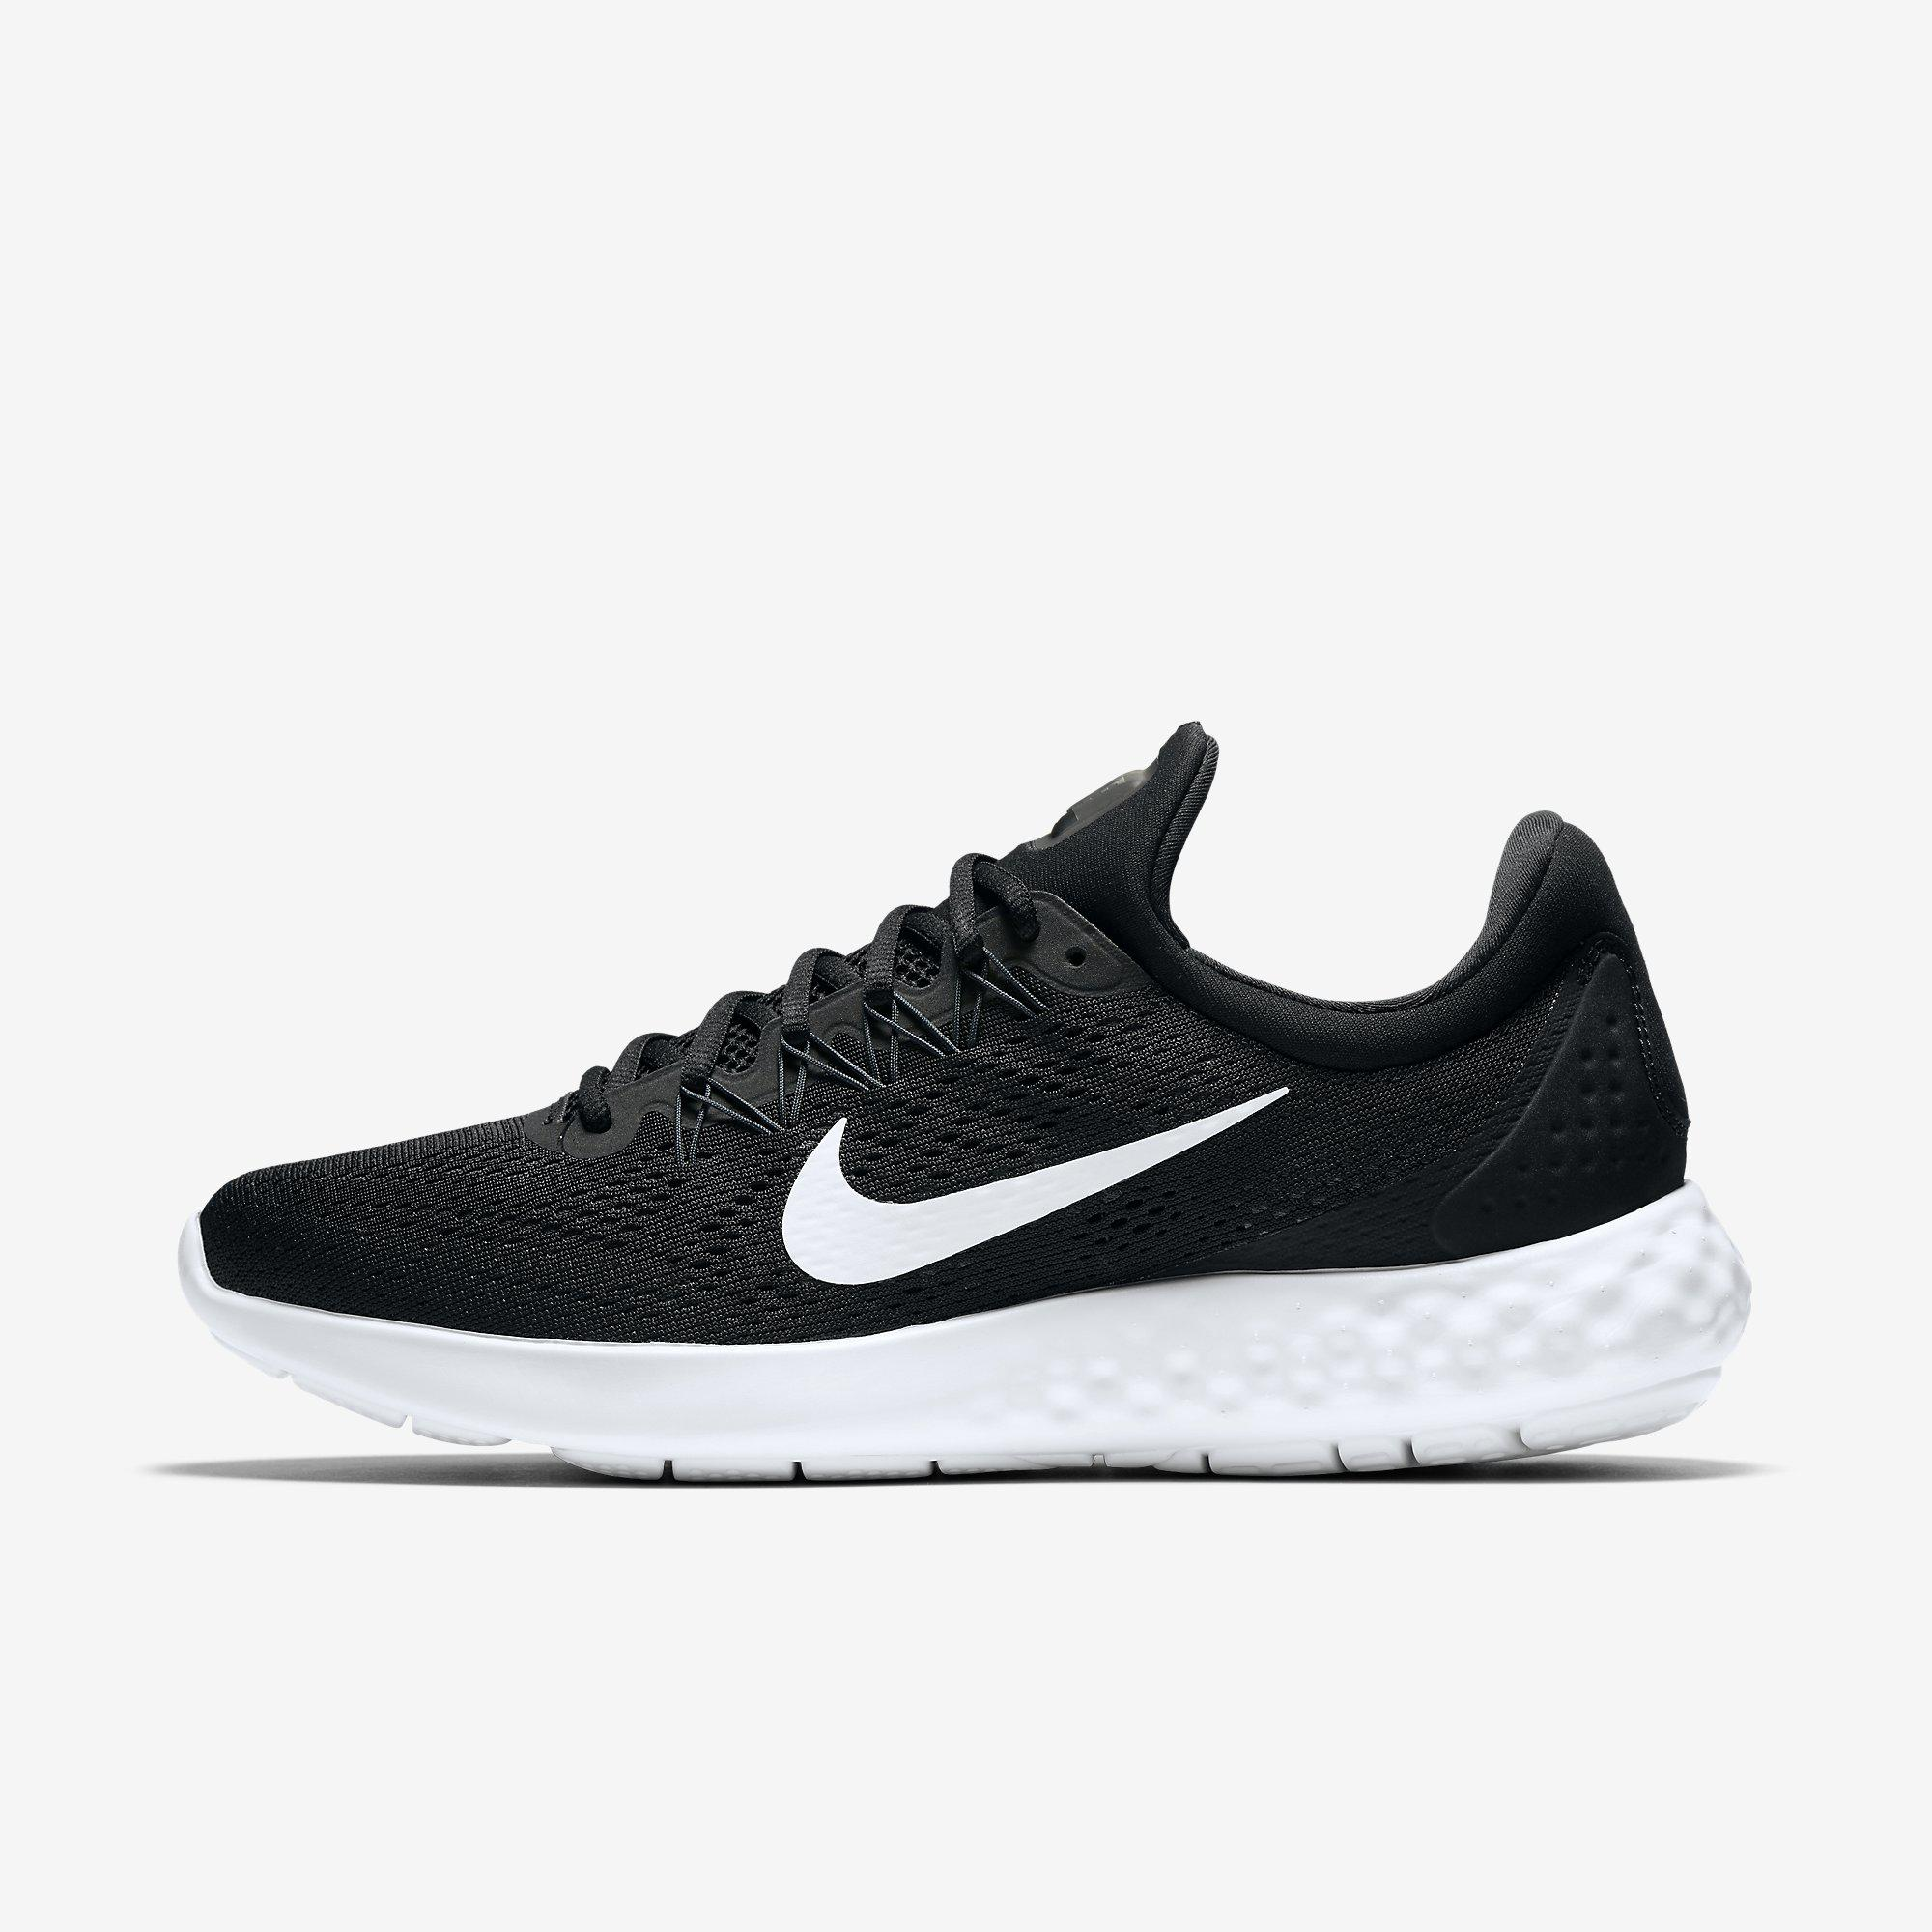 ef90451ab4b Nike Mens Lunar Skyelux Running Shoes - Black White - Tennisnuts.com